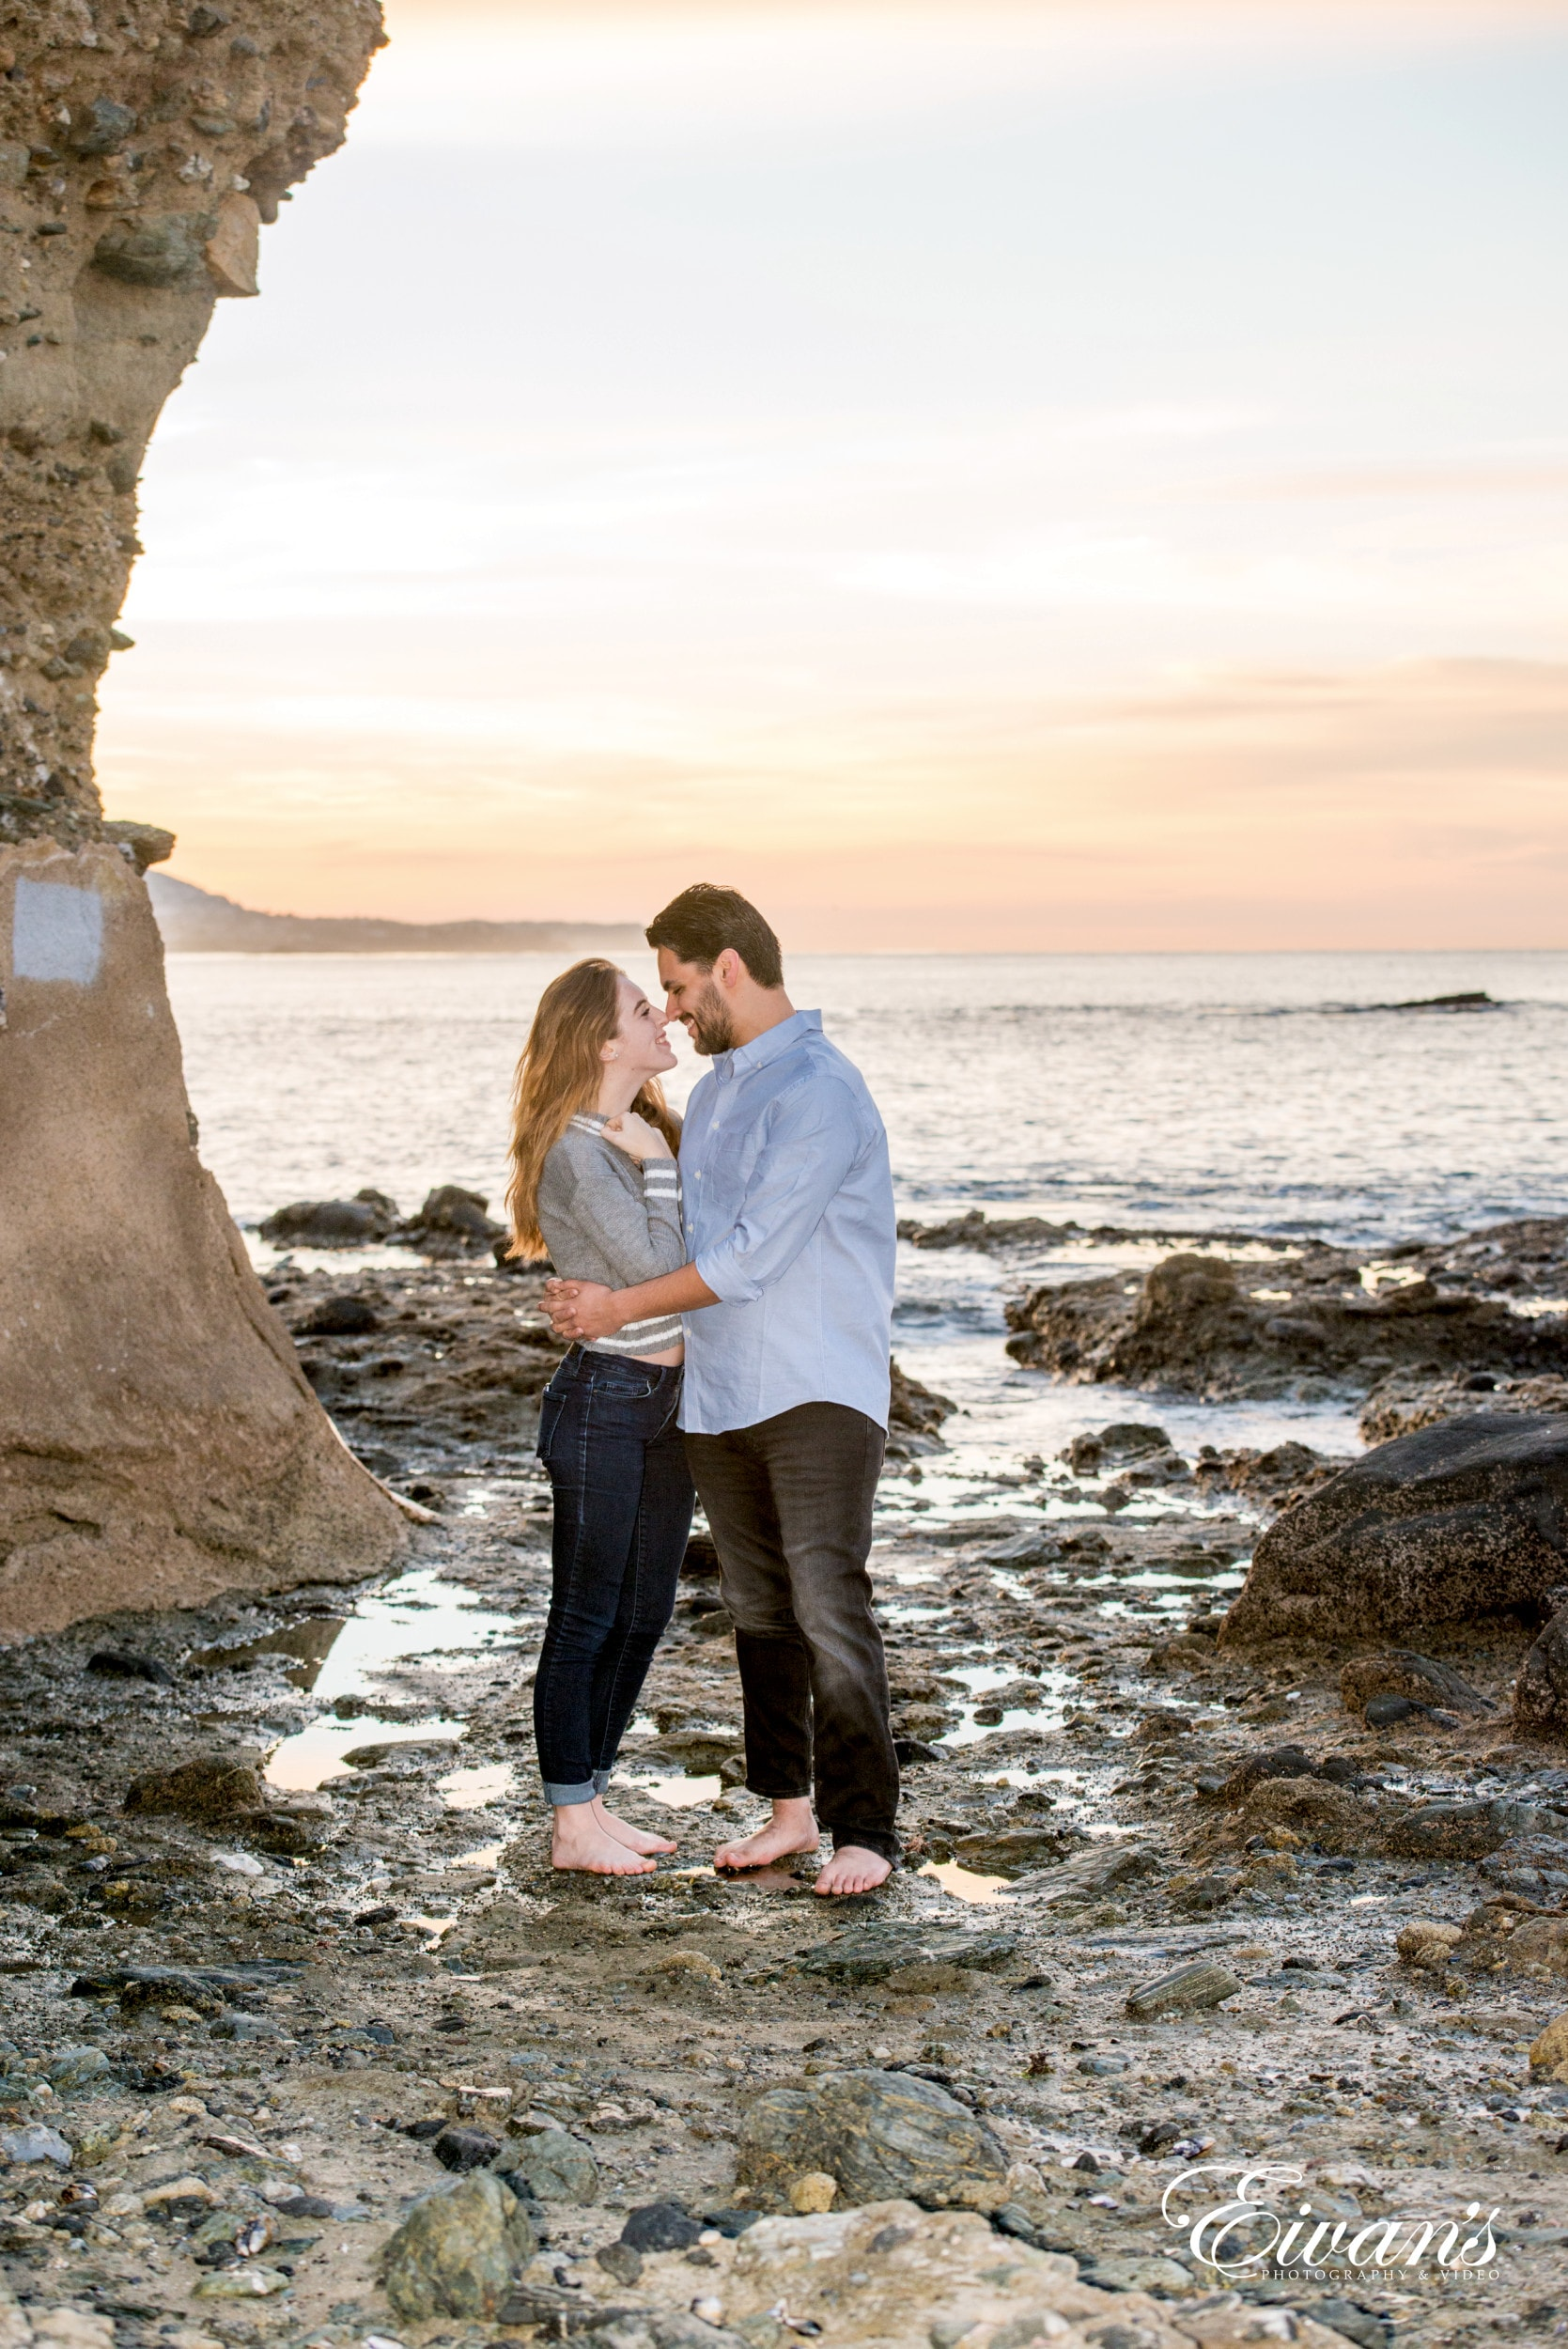 couple standing on rocky shore during daytime